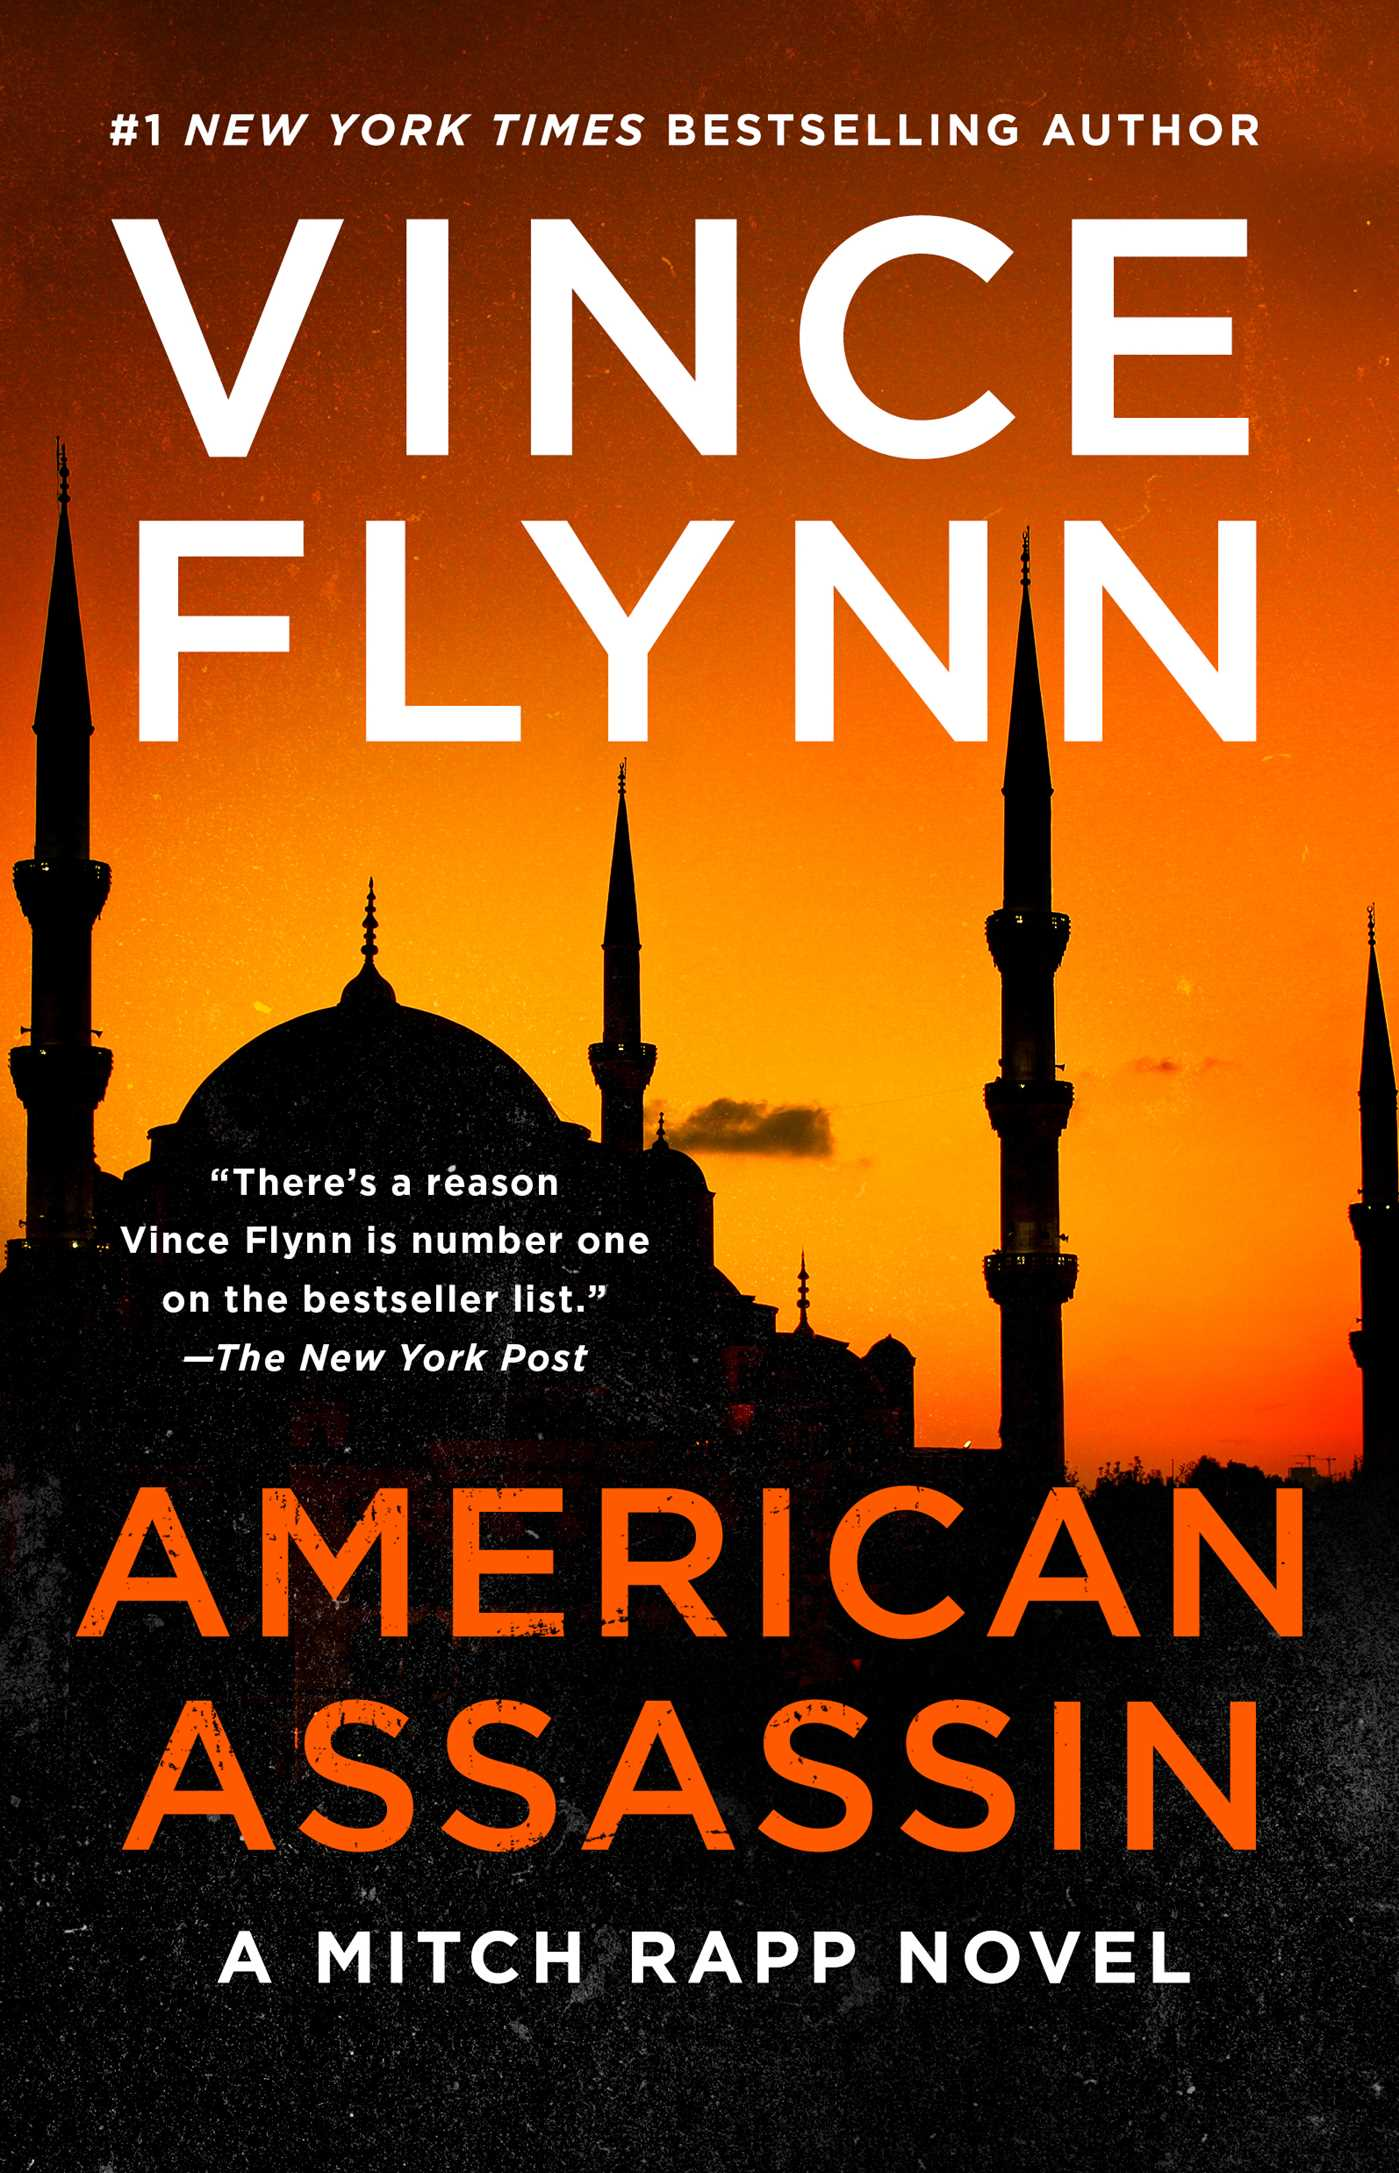 American assassin 9781439100516 hr